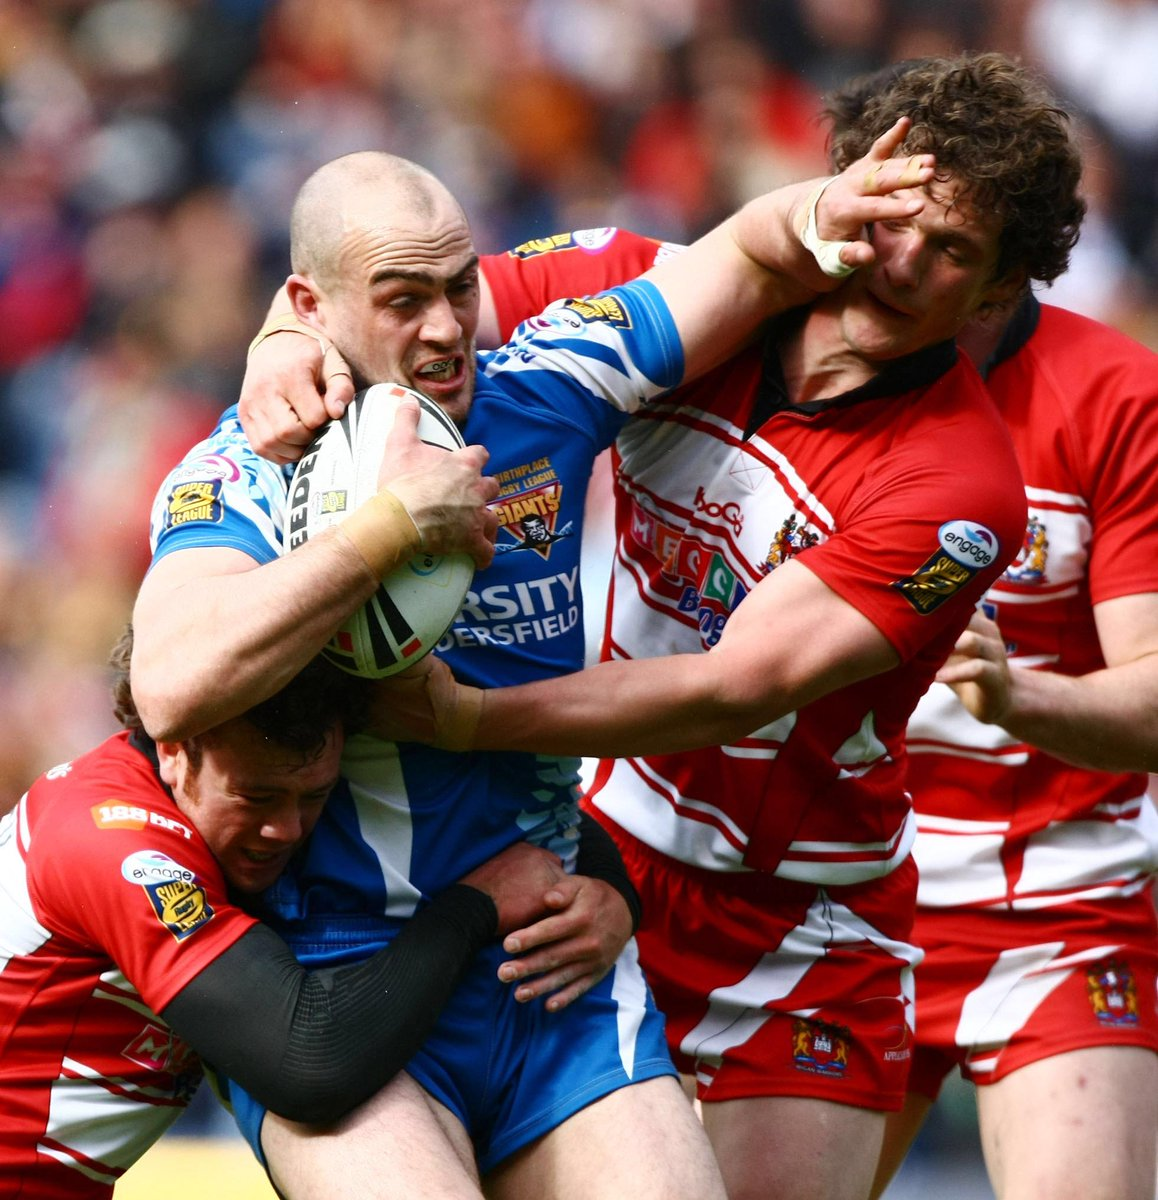 Venue & fixtures for the 2016 #MagicWeekend are announced tomorrow at 11am... #tbt http://t.co/imLXcTQH2o